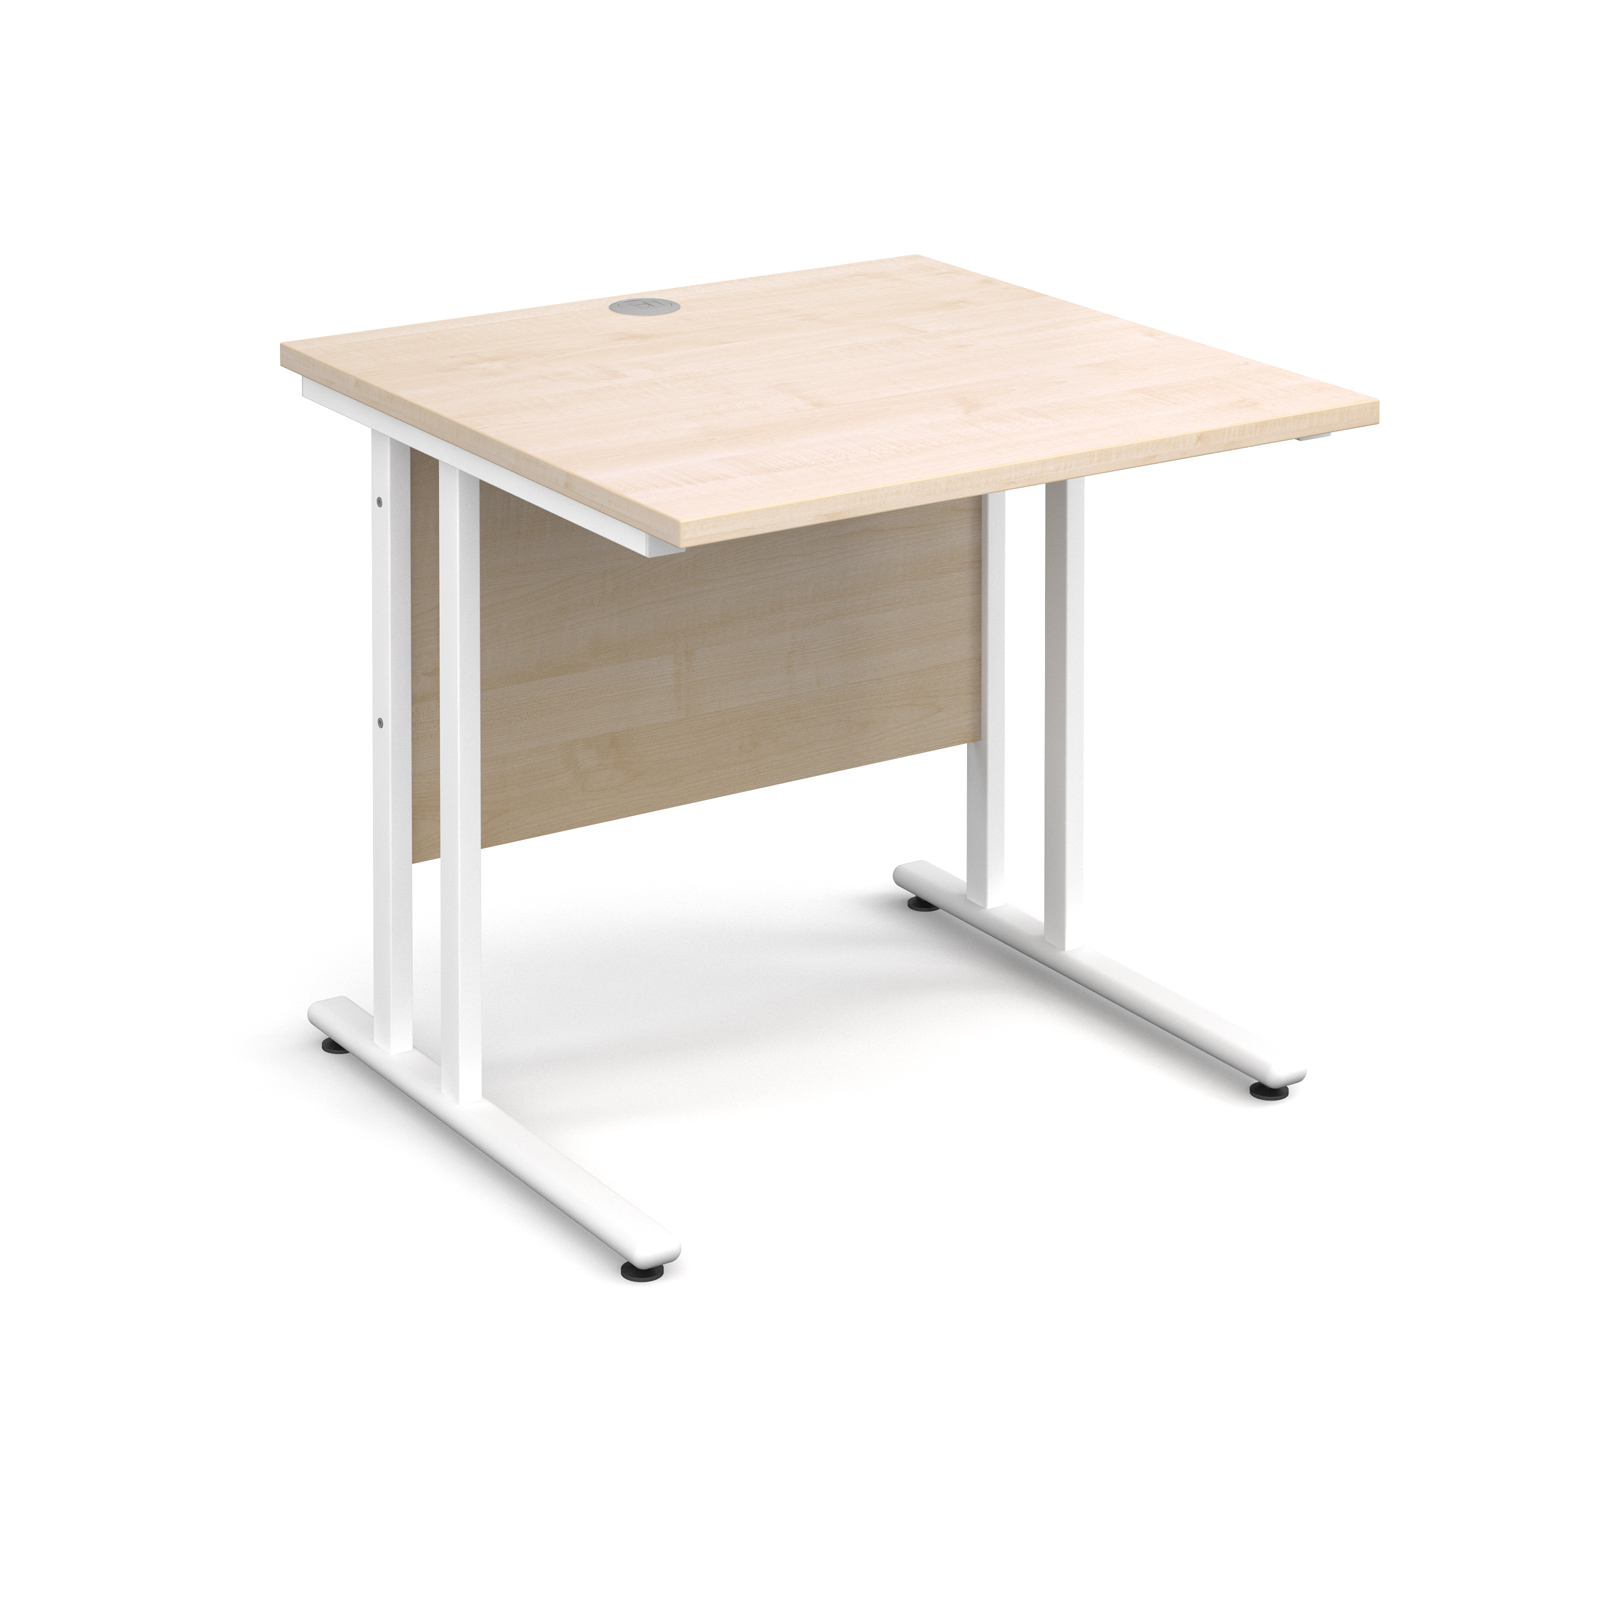 Dams Maestro 25 WL Straight Desk 800mm